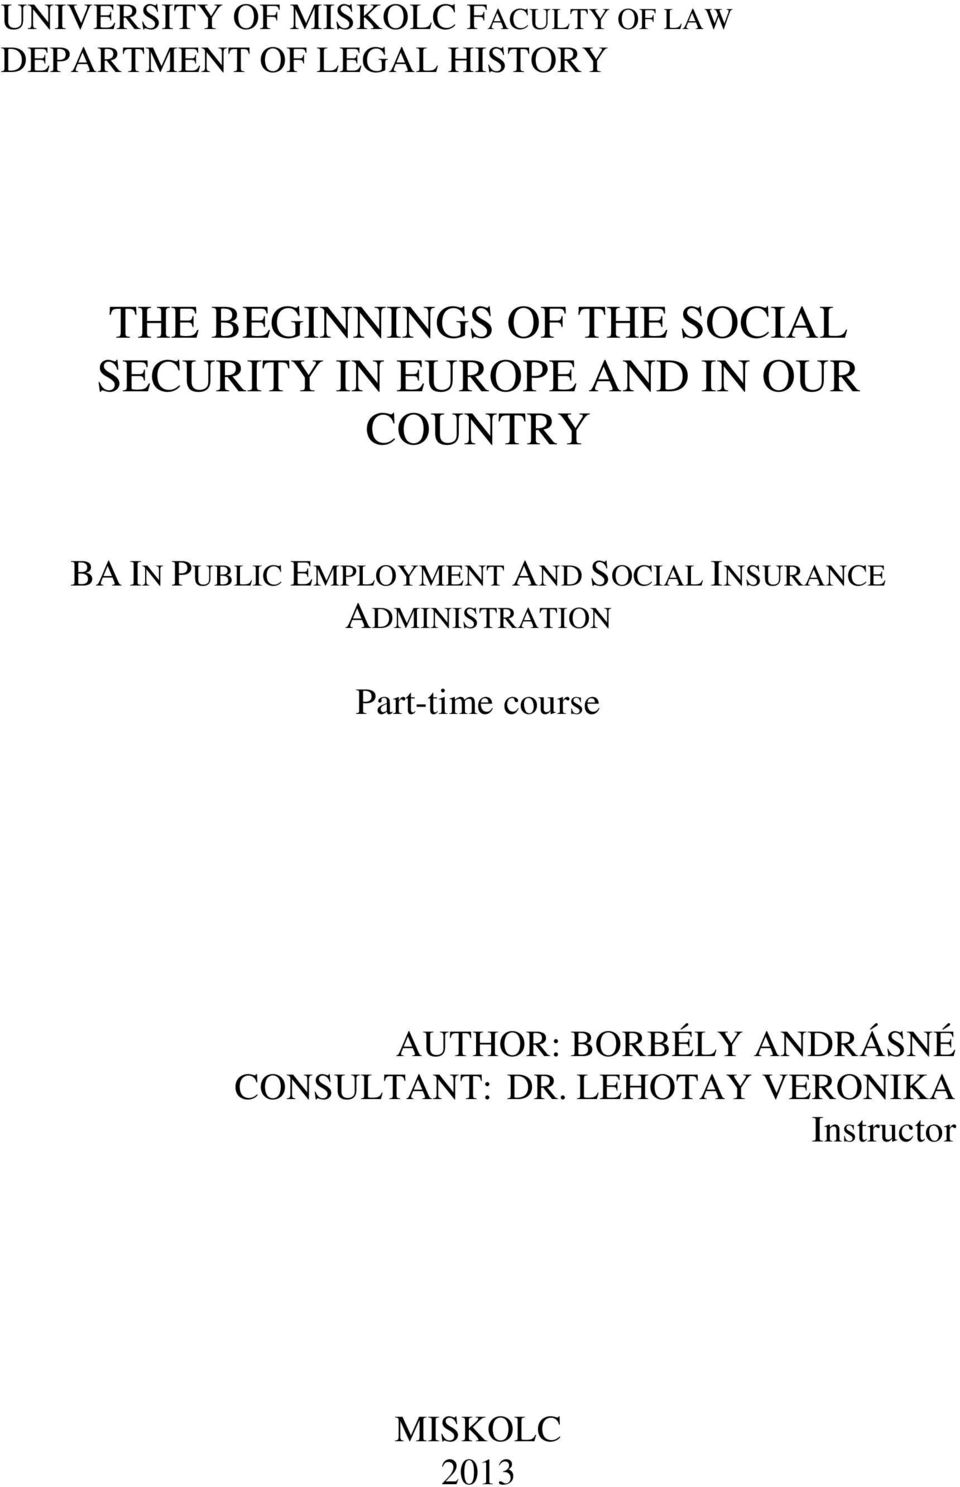 PUBLIC EMPLOYMENT AND SOCIAL INSURANCE ADMINISTRATION Part-time course